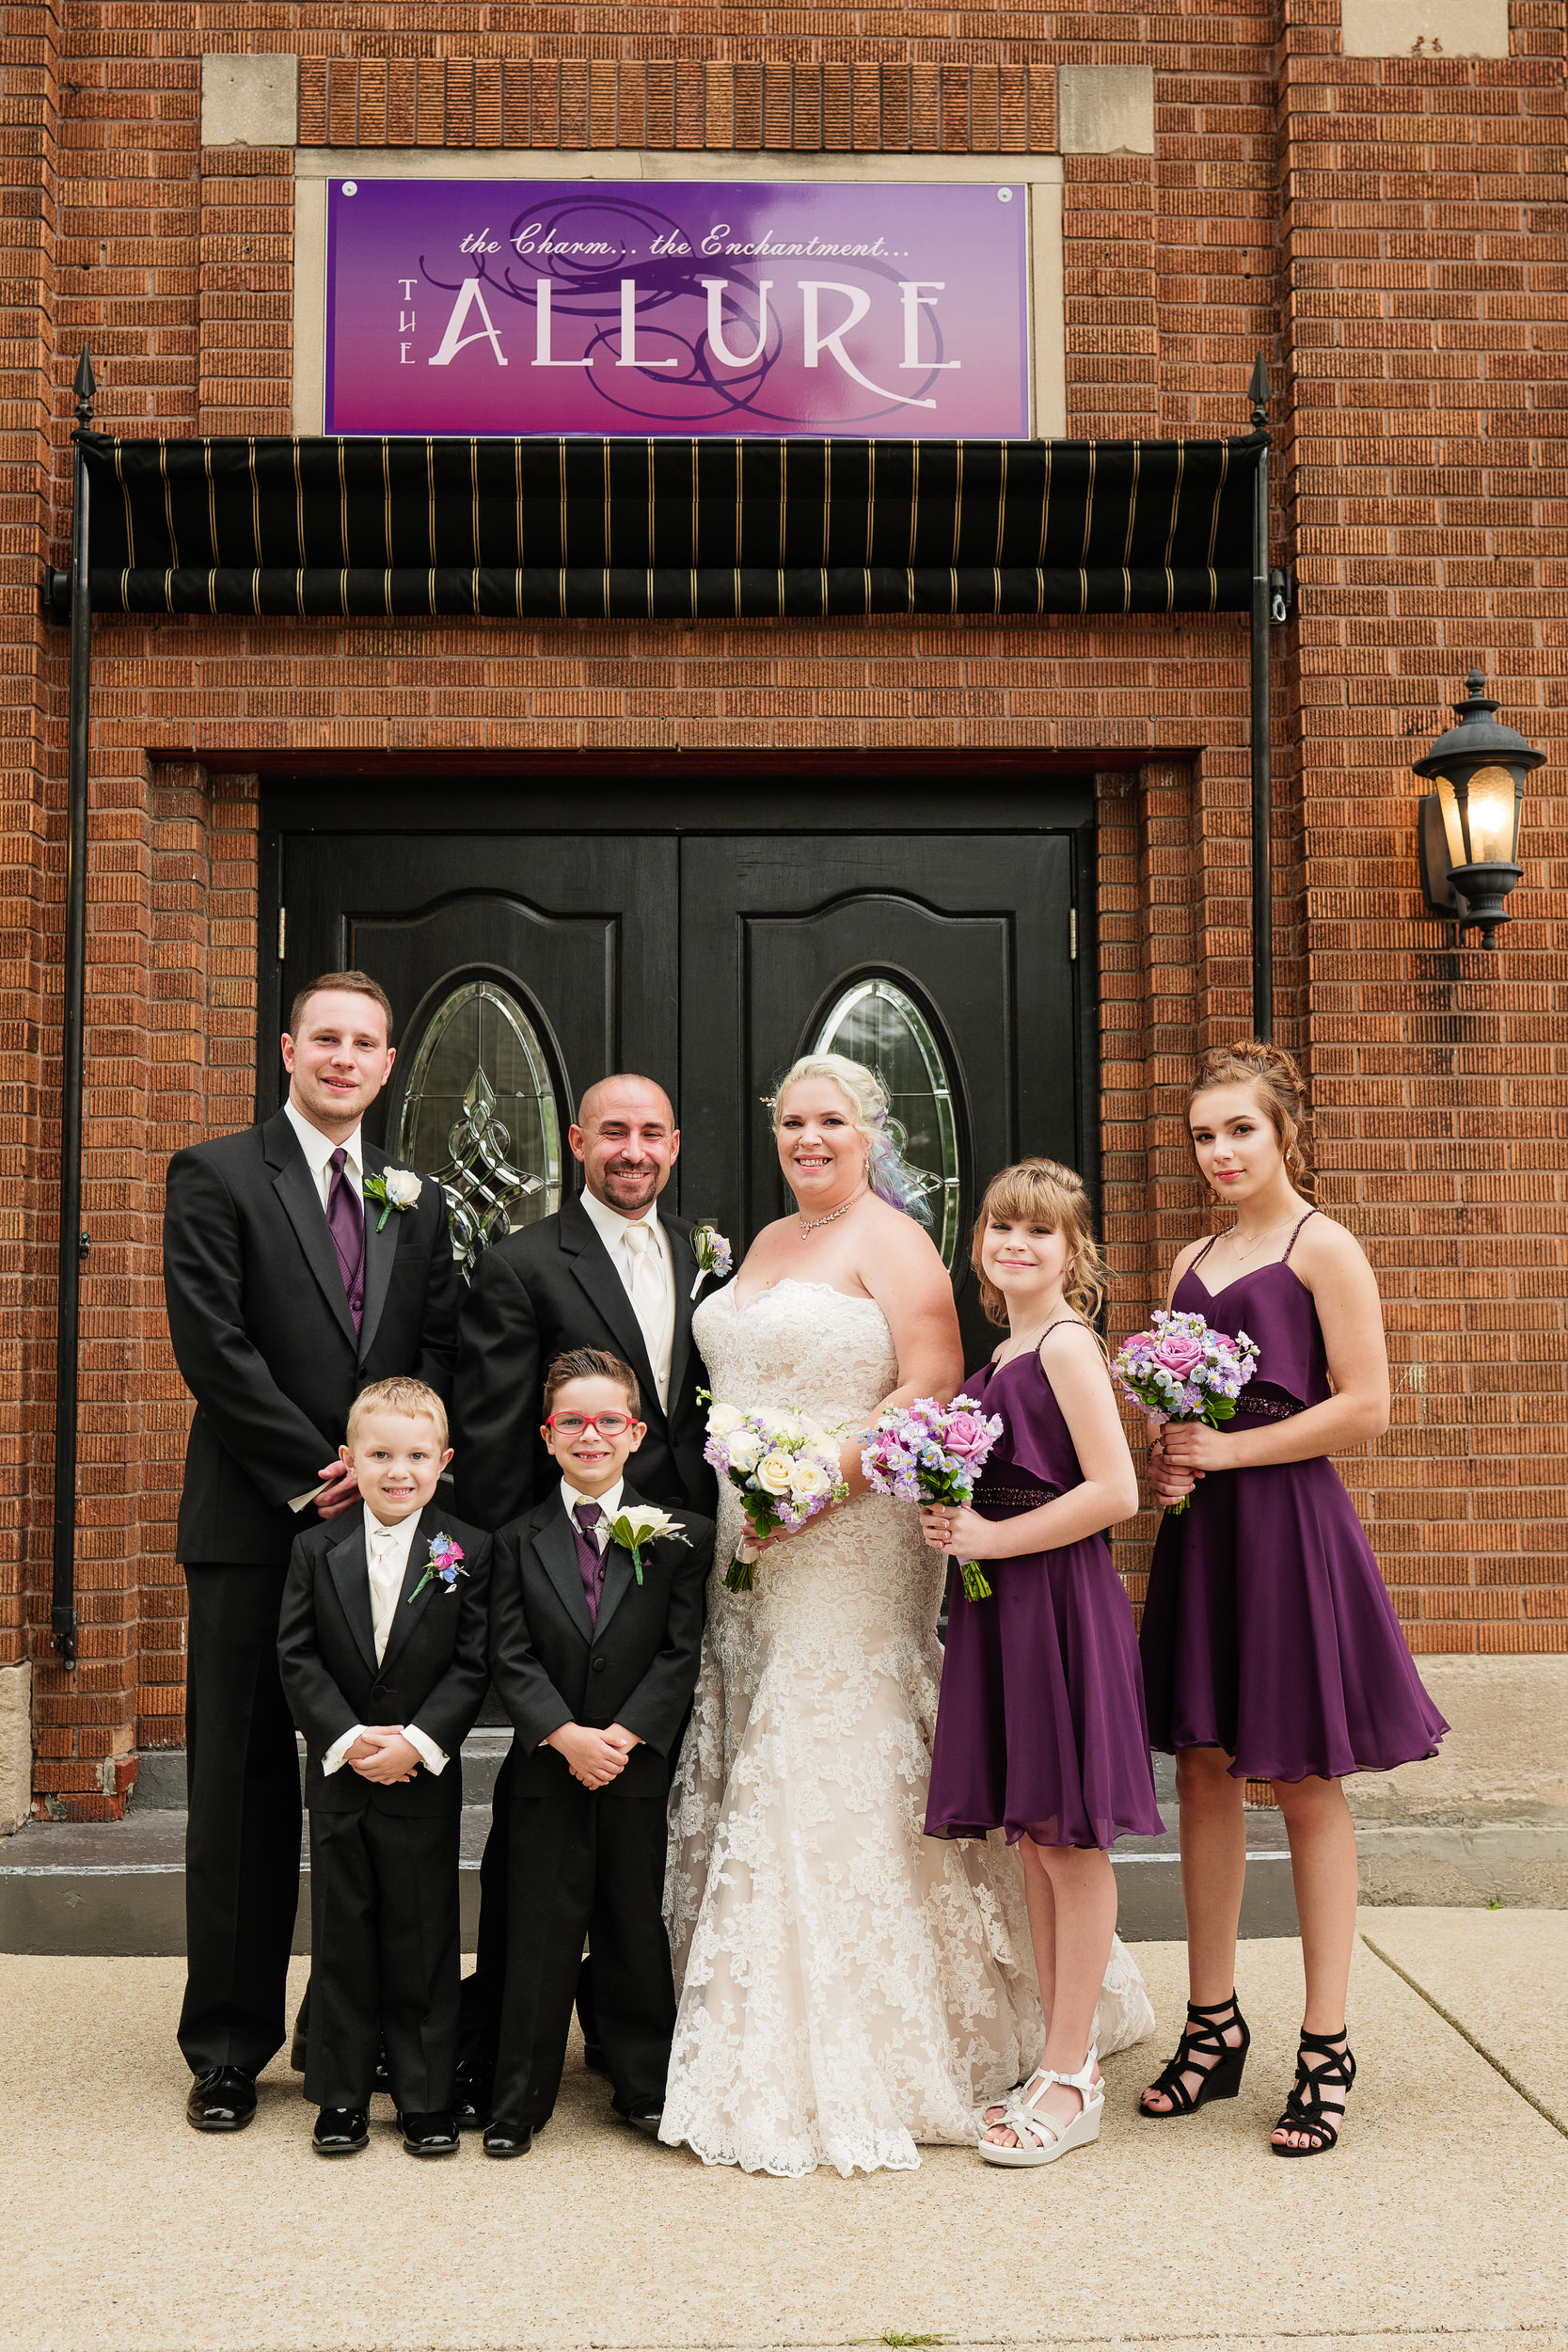 Wedding party at the entrance of The Allure wedding venue.